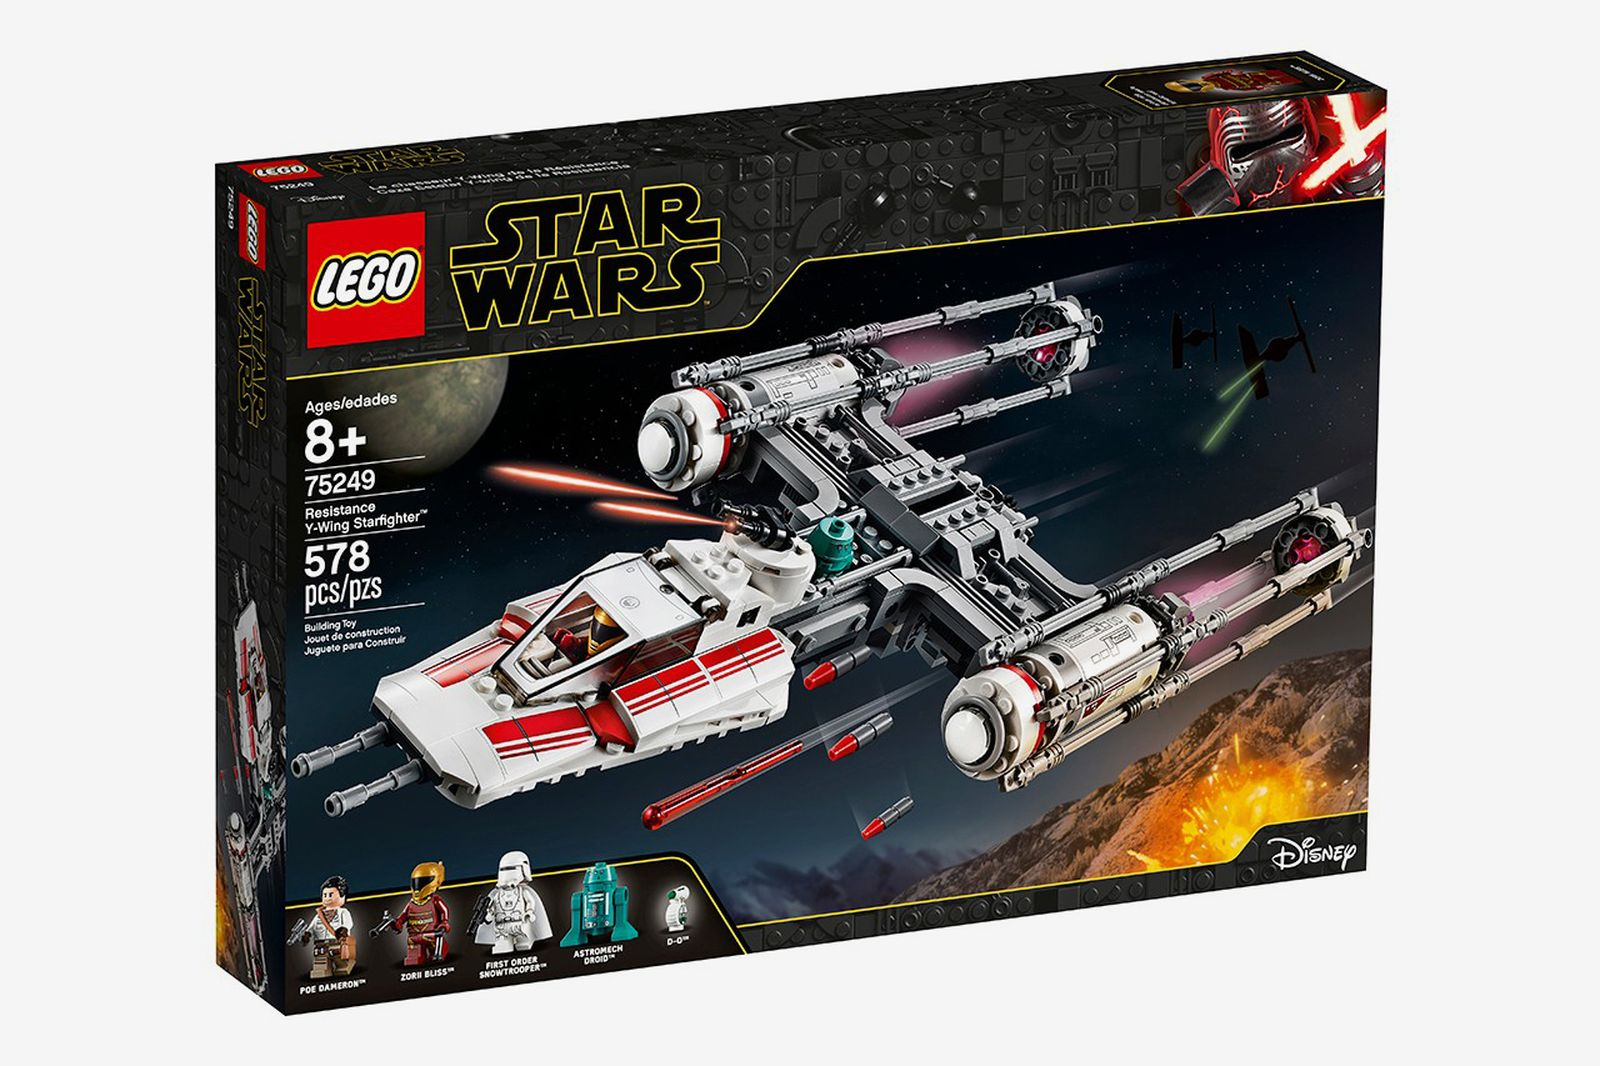 lego star wars range 20th anniversary The Mandalorian star wars: rise of skywalker